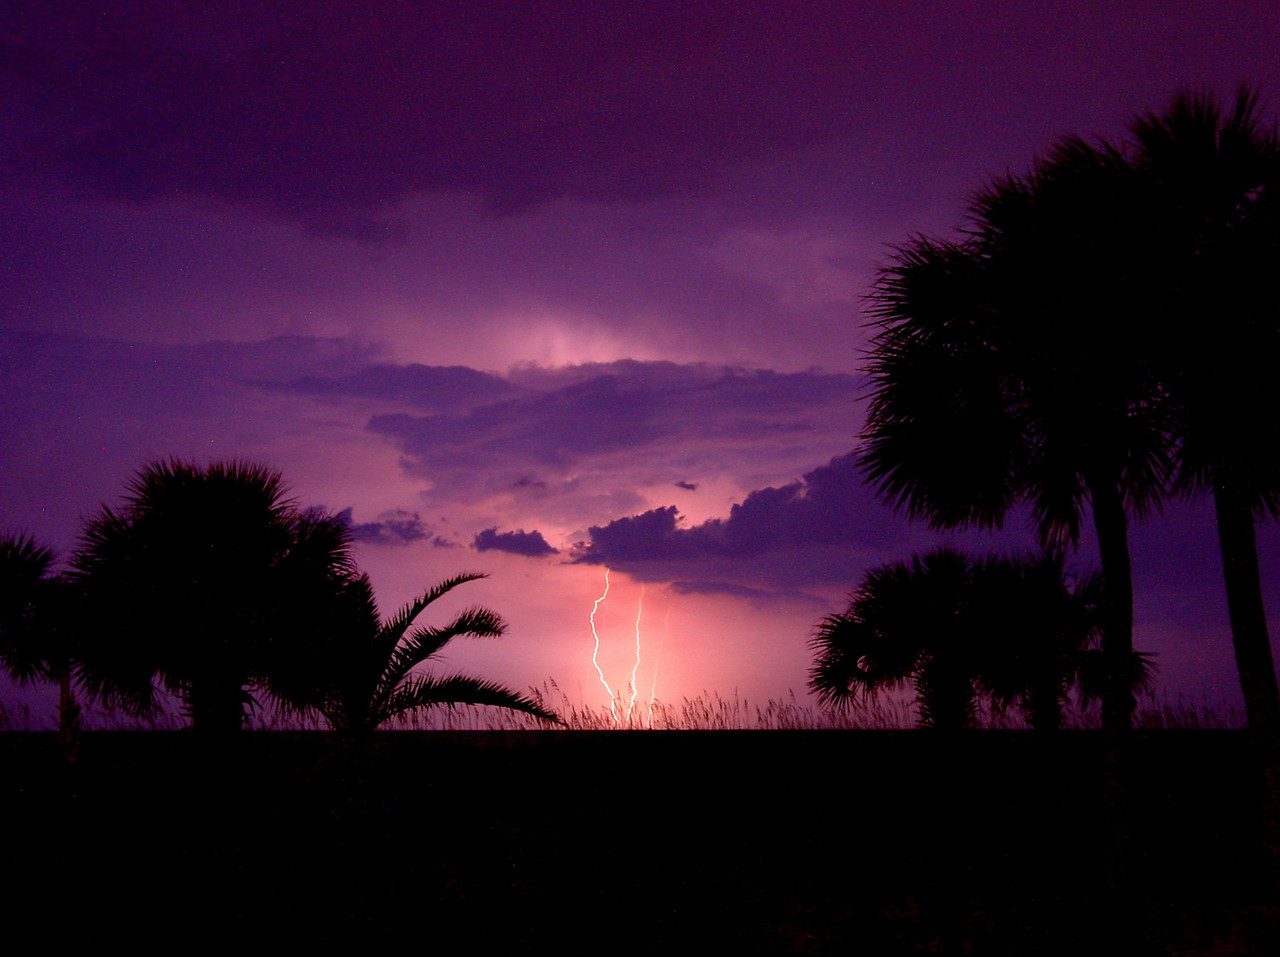 Thunderstorm over the ocean at Myrtle Beach, SC. Taken with Sony digital point-and-shoot on tripod. This was the very first shot.